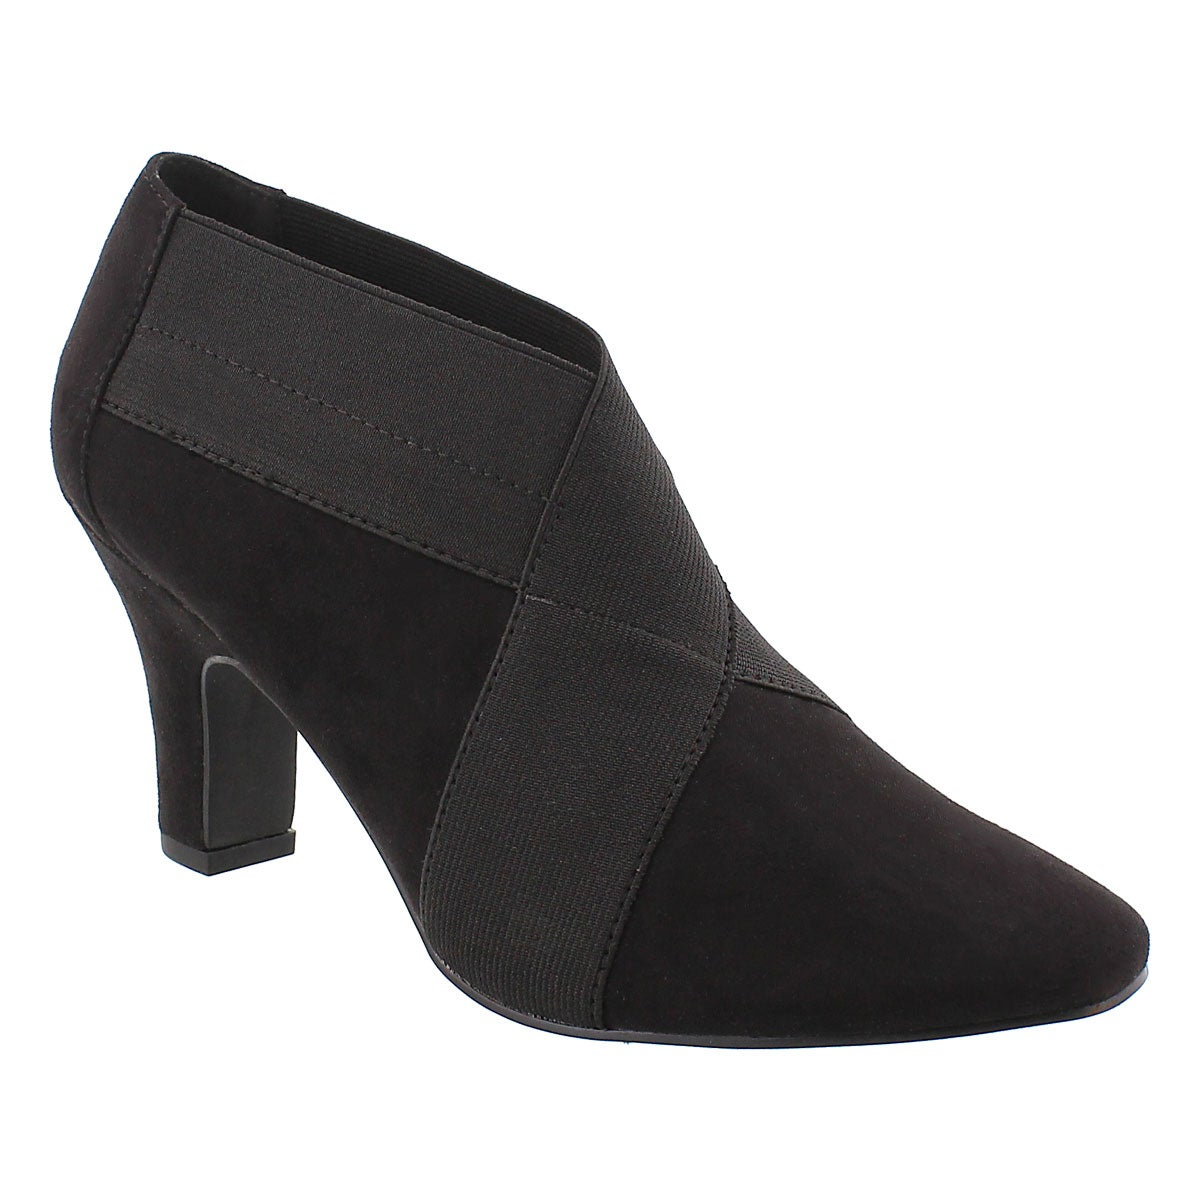 Women's DEANNA black low dress booties